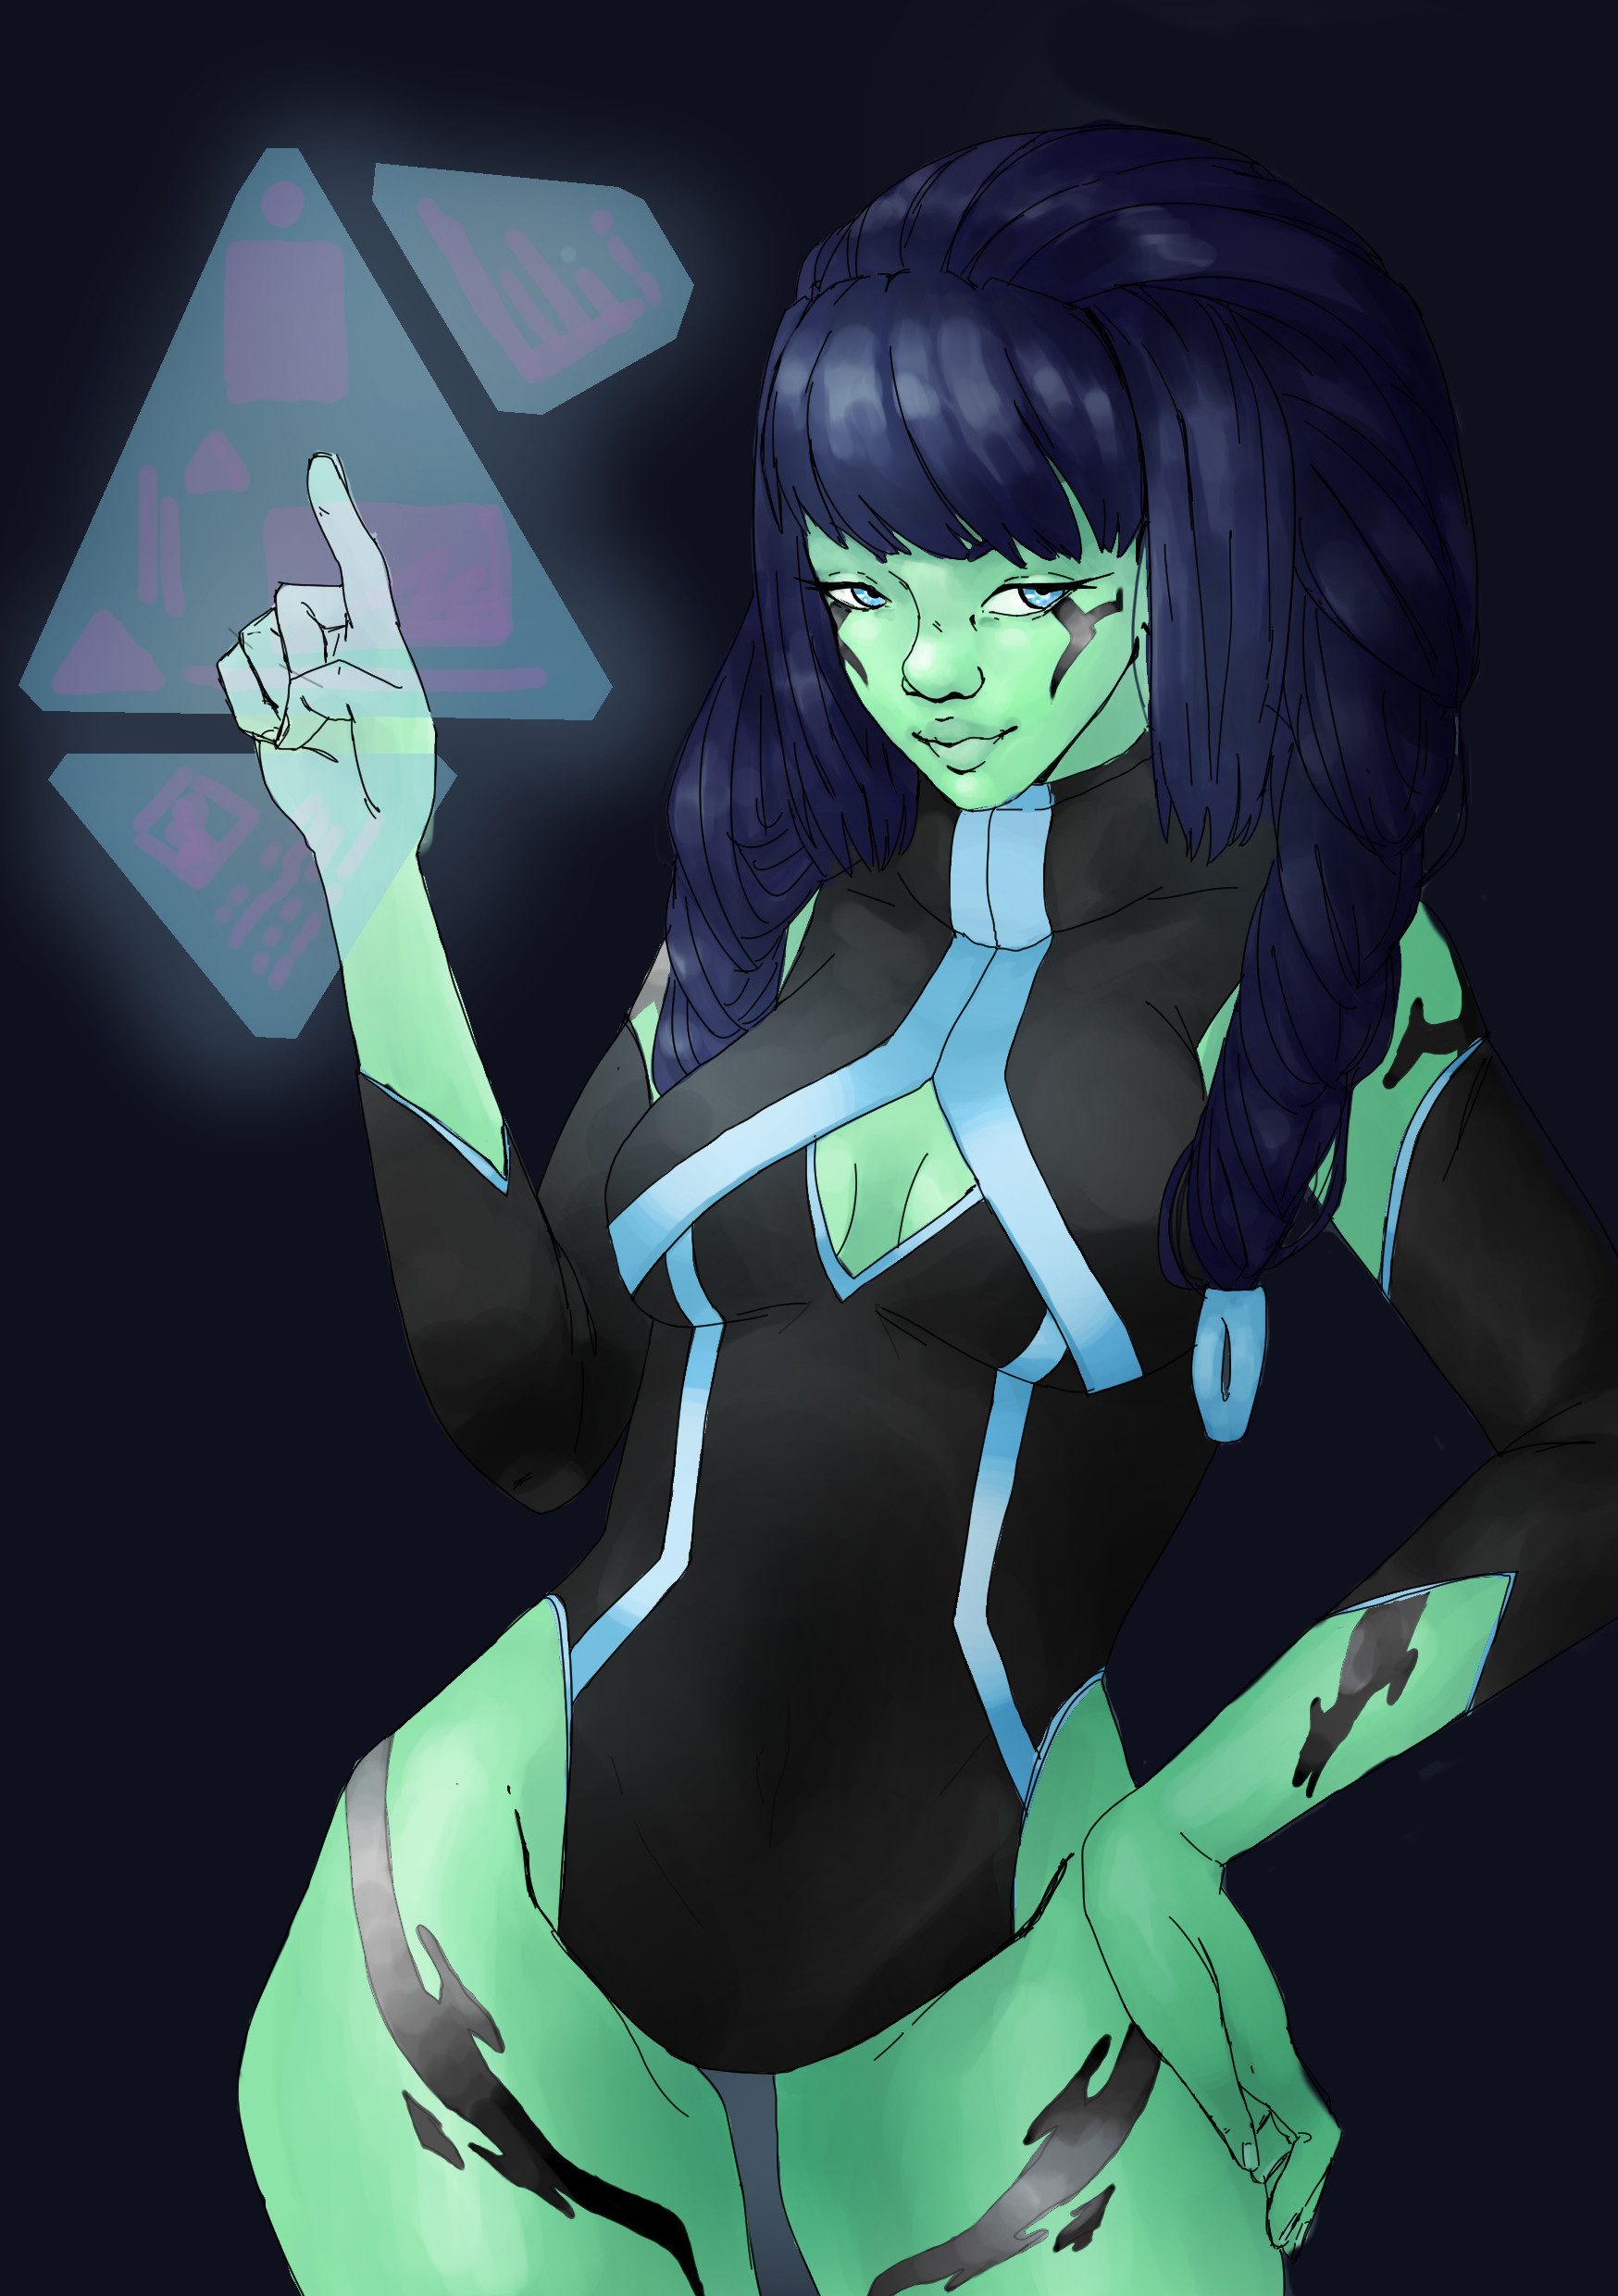 Anime Alien Girl grace taylor - more alien women :p